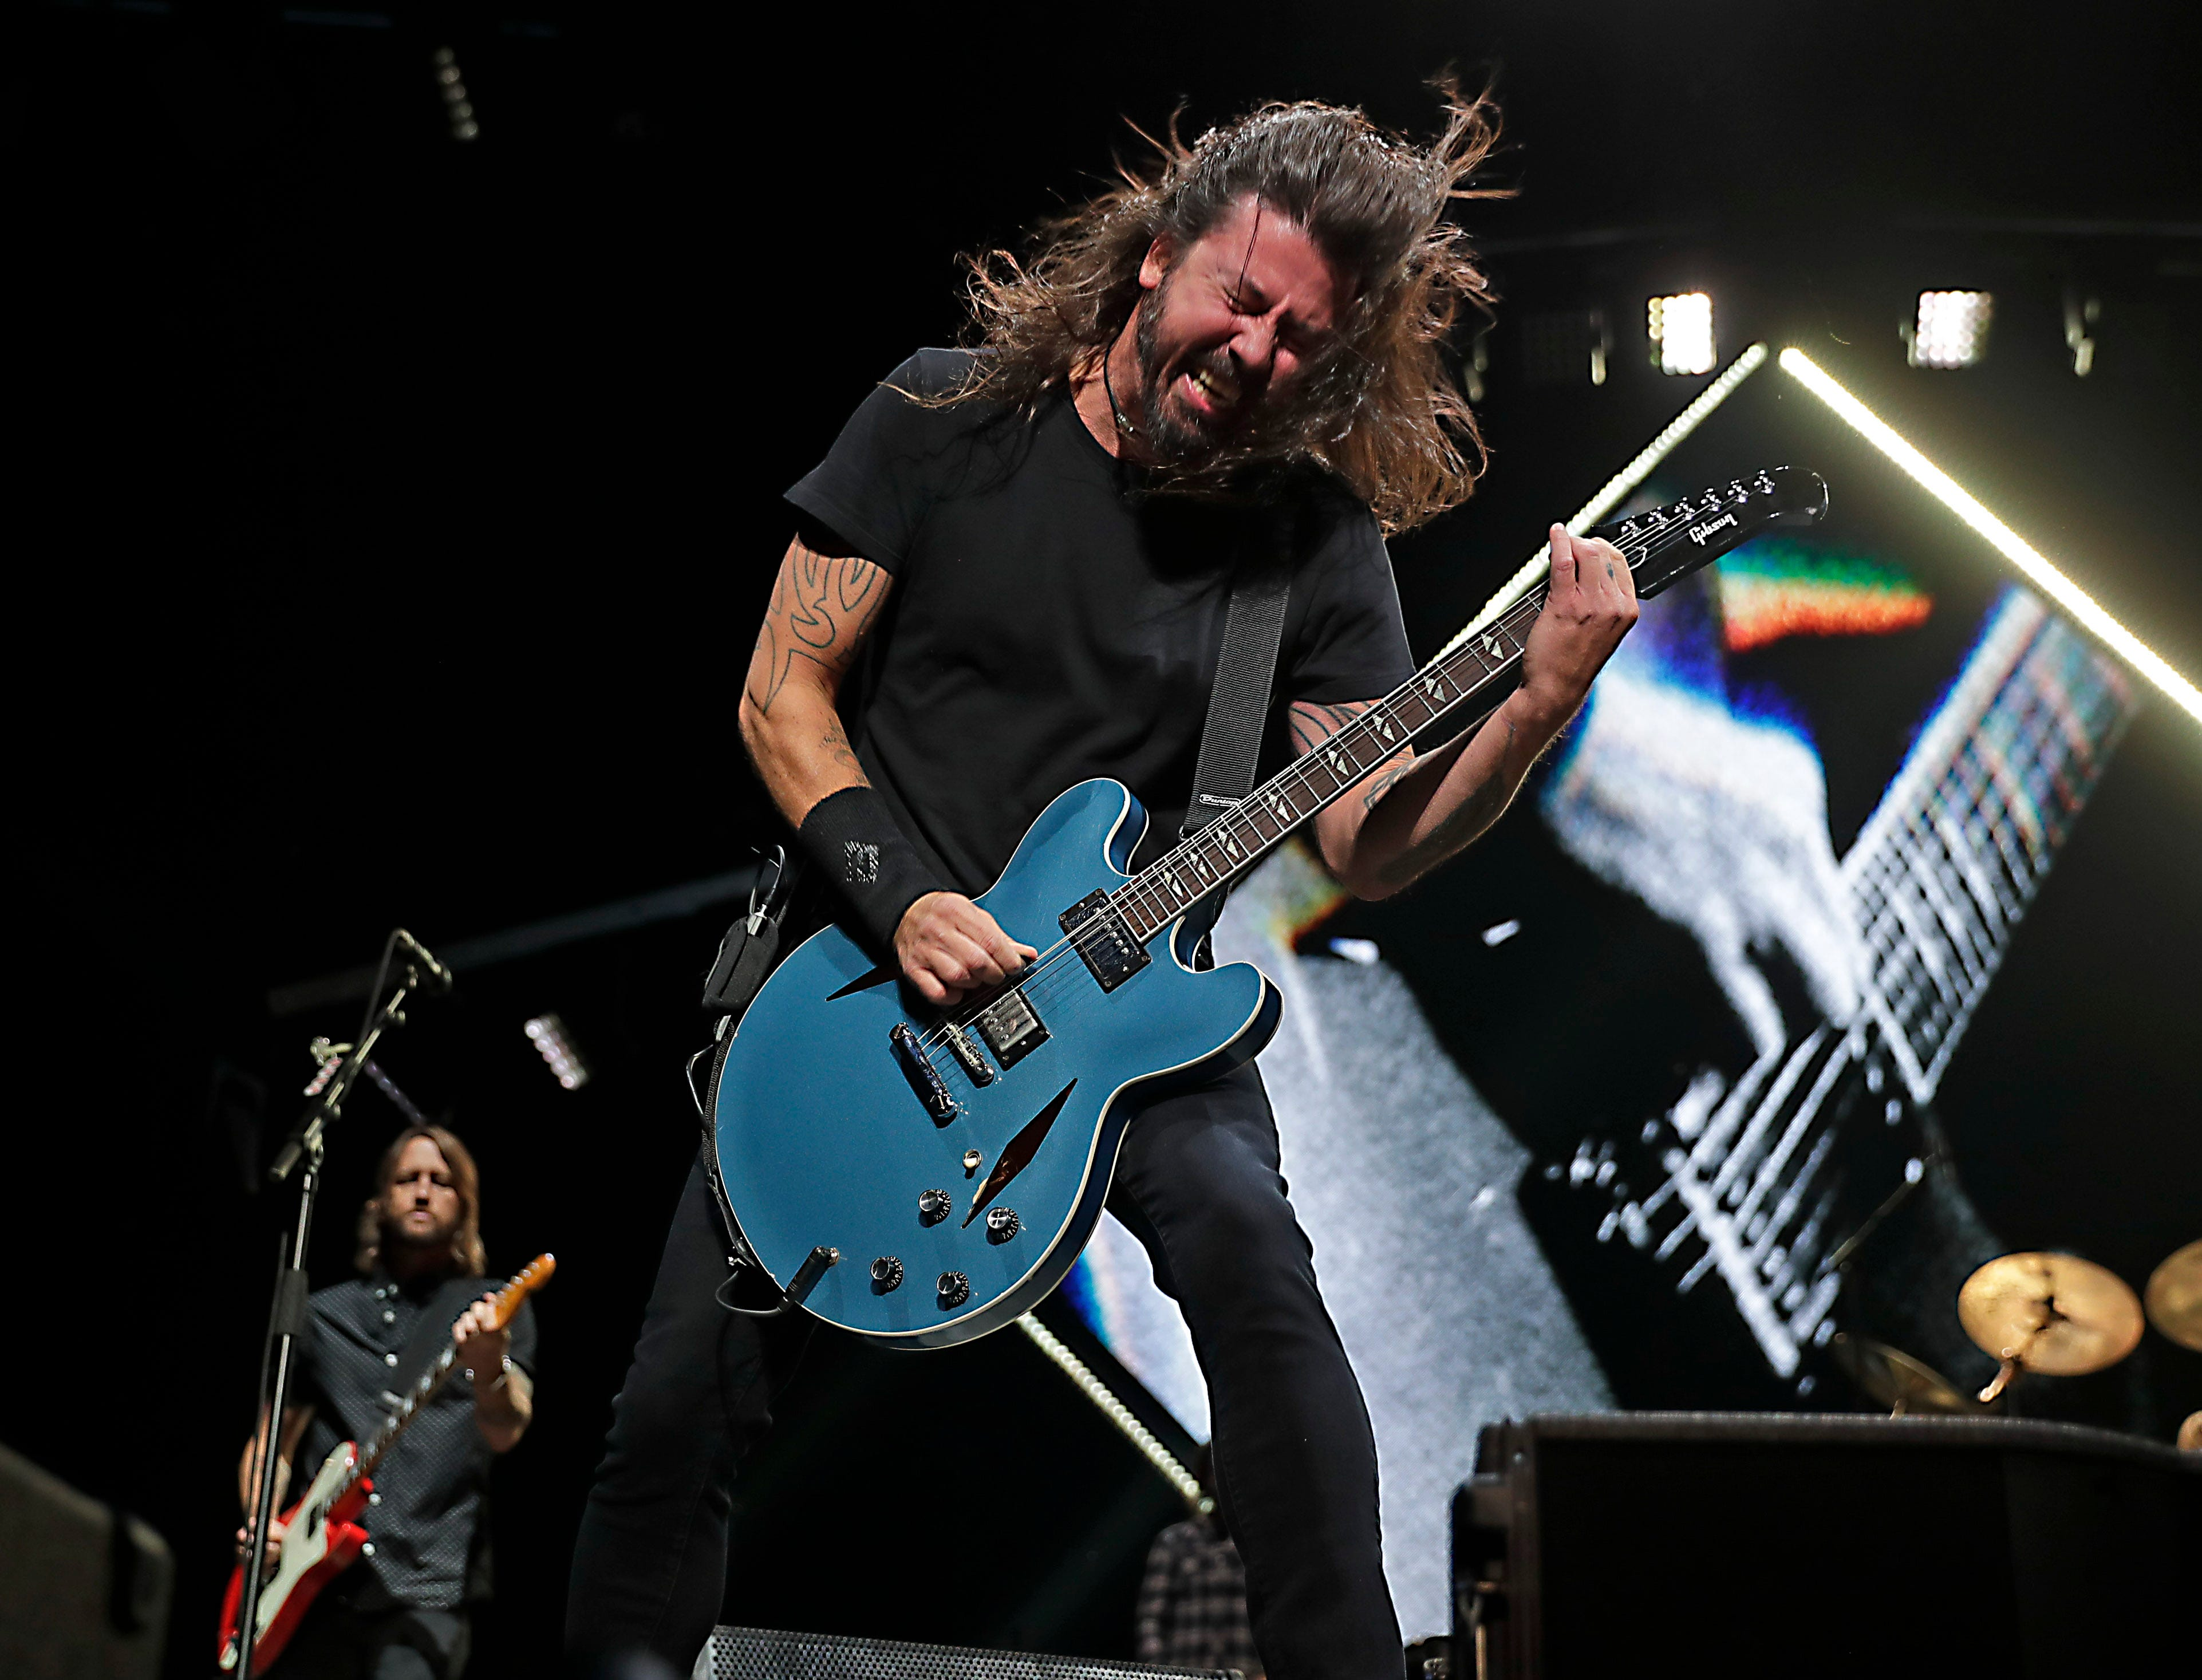 Foofighters18 02 Ent Wood